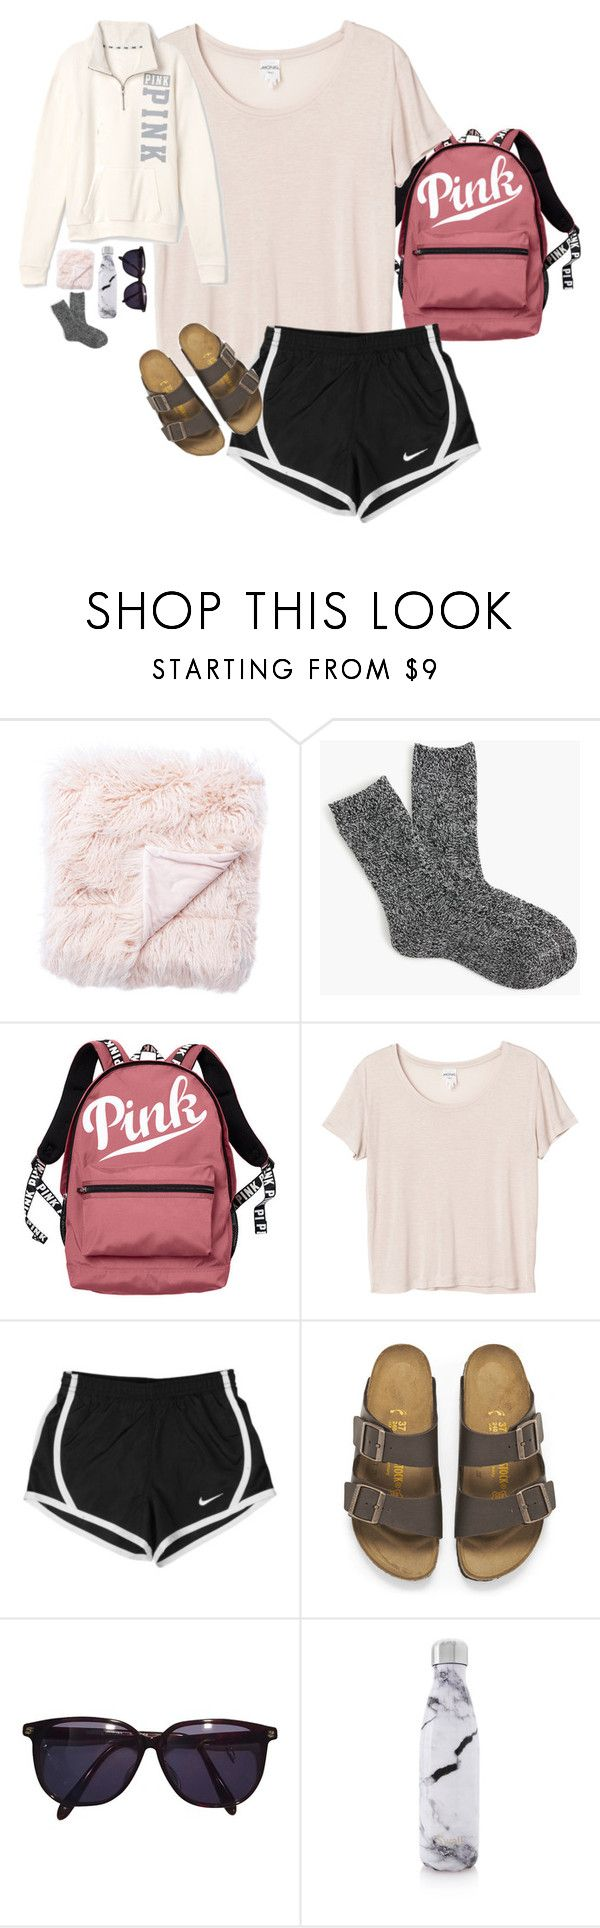 """pin: rileykleiin by me:) just saw this here!! """"day seven: ride home"""" by rileykleiin ❤ liked on Polyvore featuring Jaipur, J.Crew, Victoria's Secret, Monki, NIKE, Birkenstock, Sonia Rykiel, S'well, Victoria's Secret PINK and mmadsssummervacay2017"""